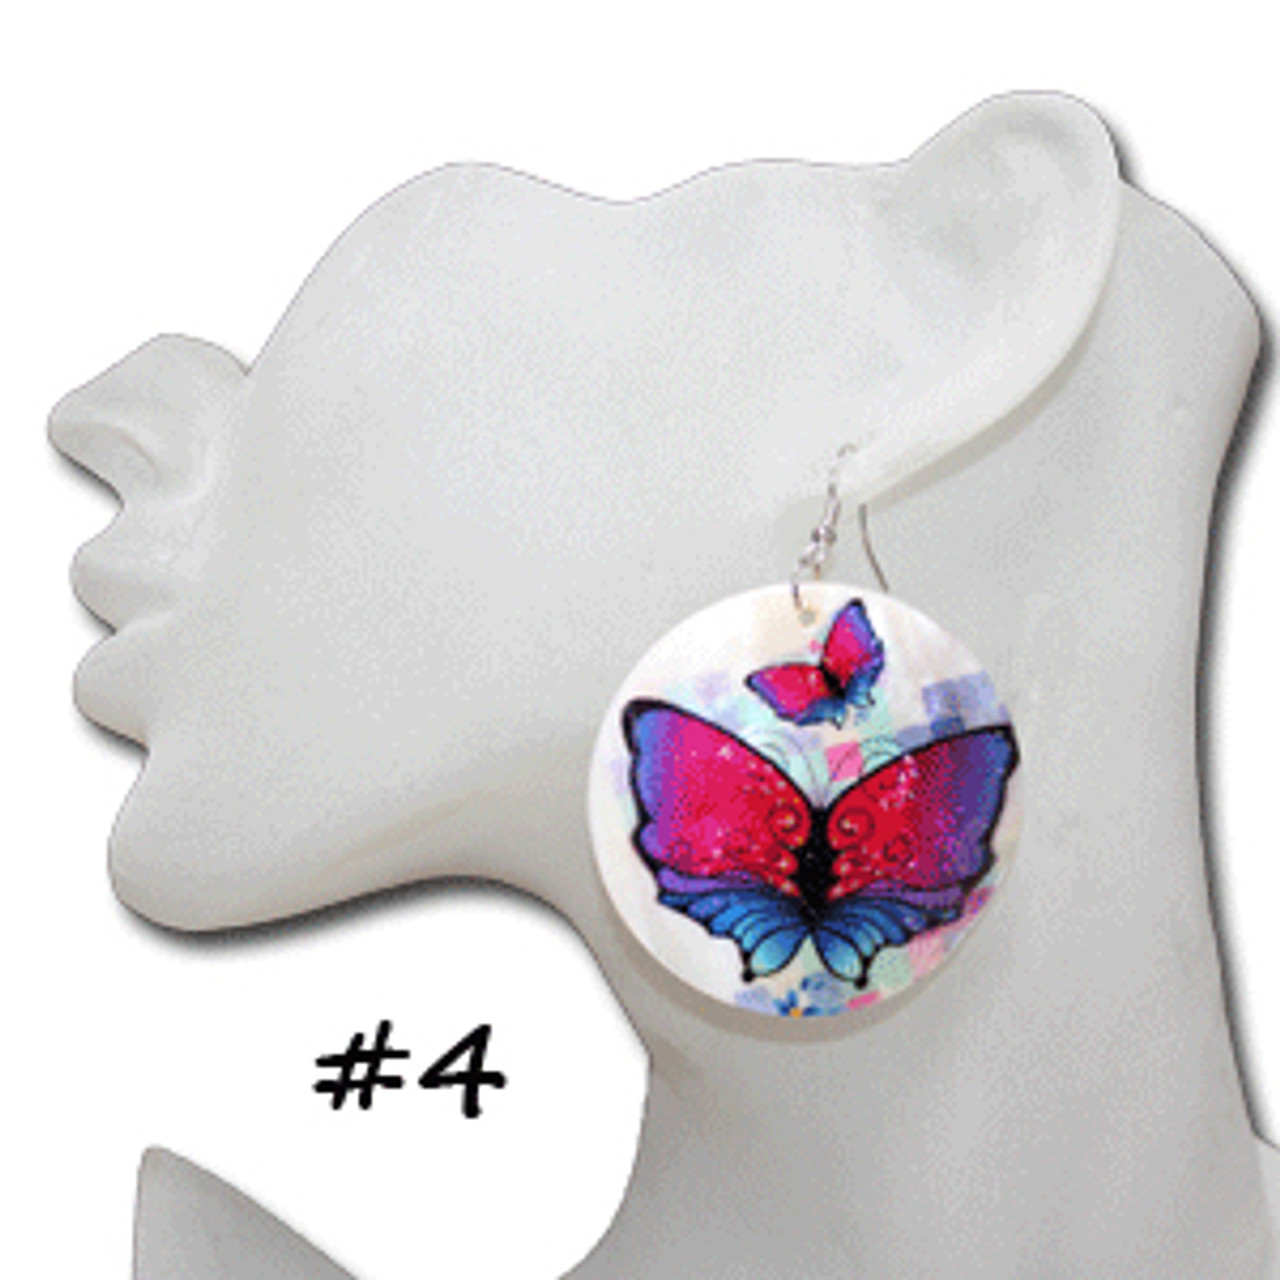 Butterflies on shell earrings